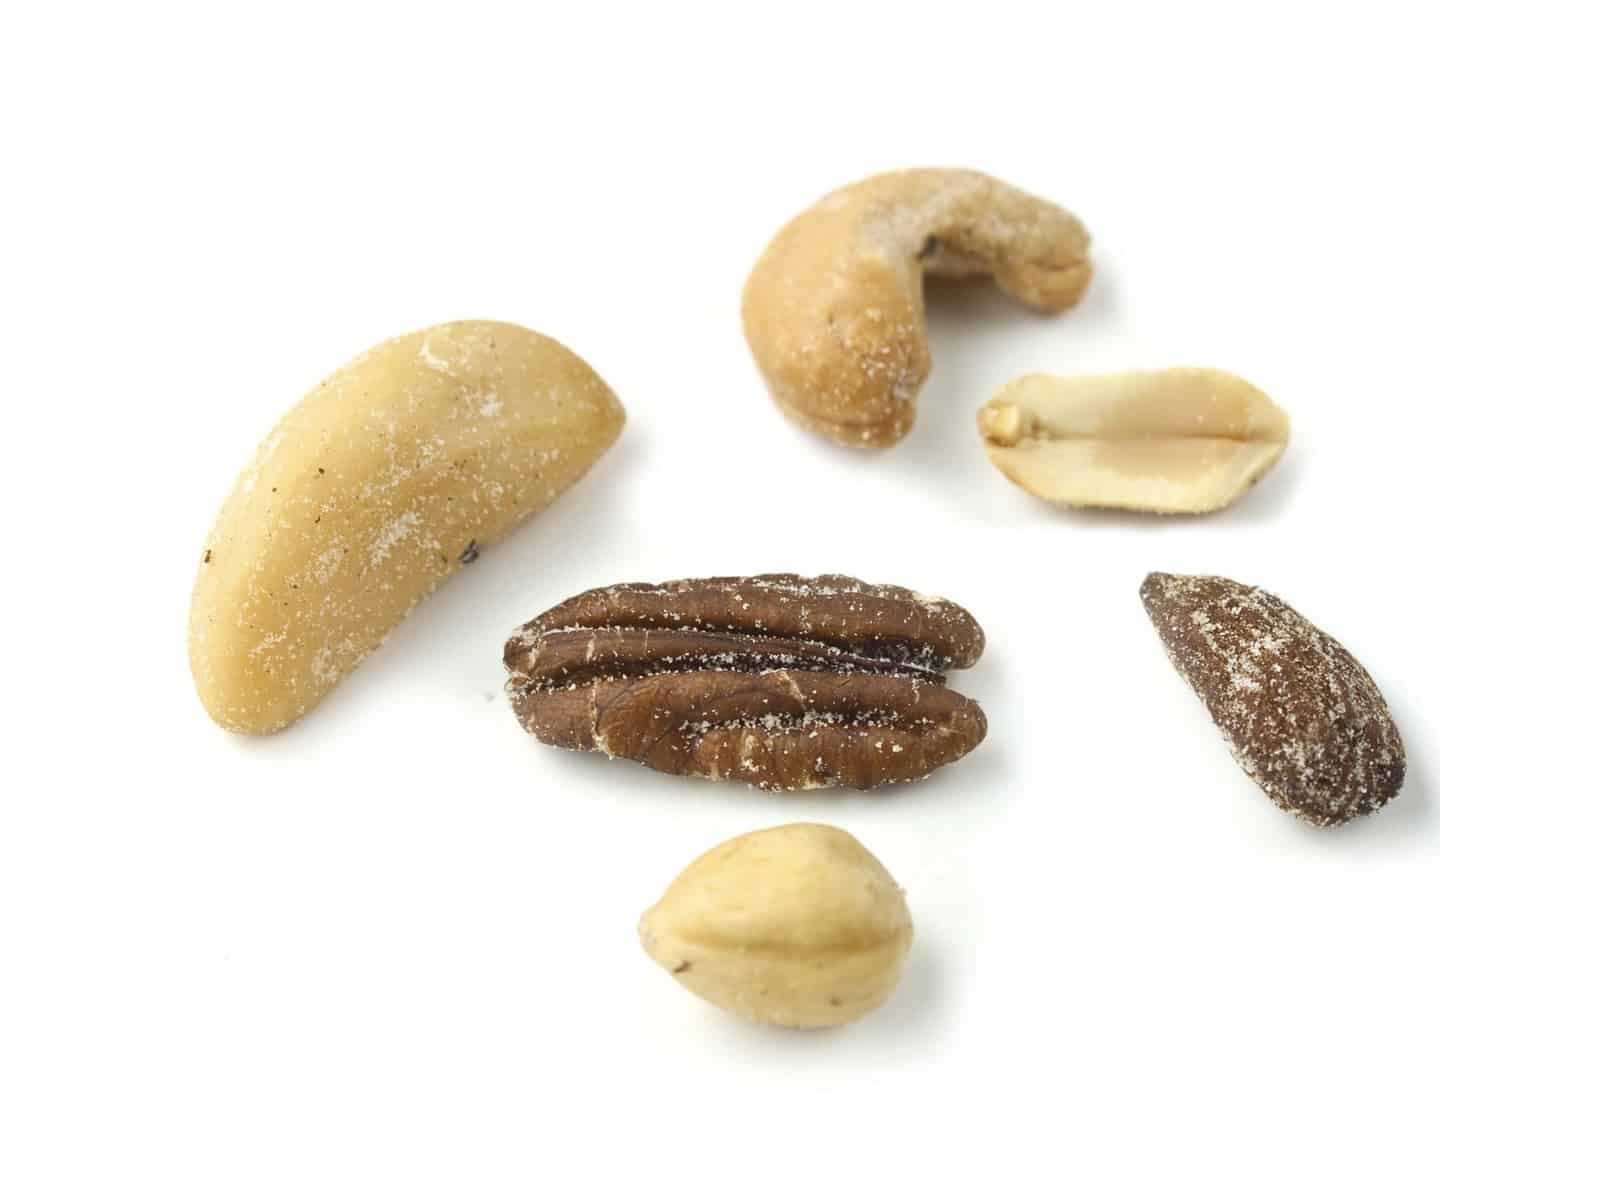 Roasted & Salted Mixed Nuts w/ Peanuts